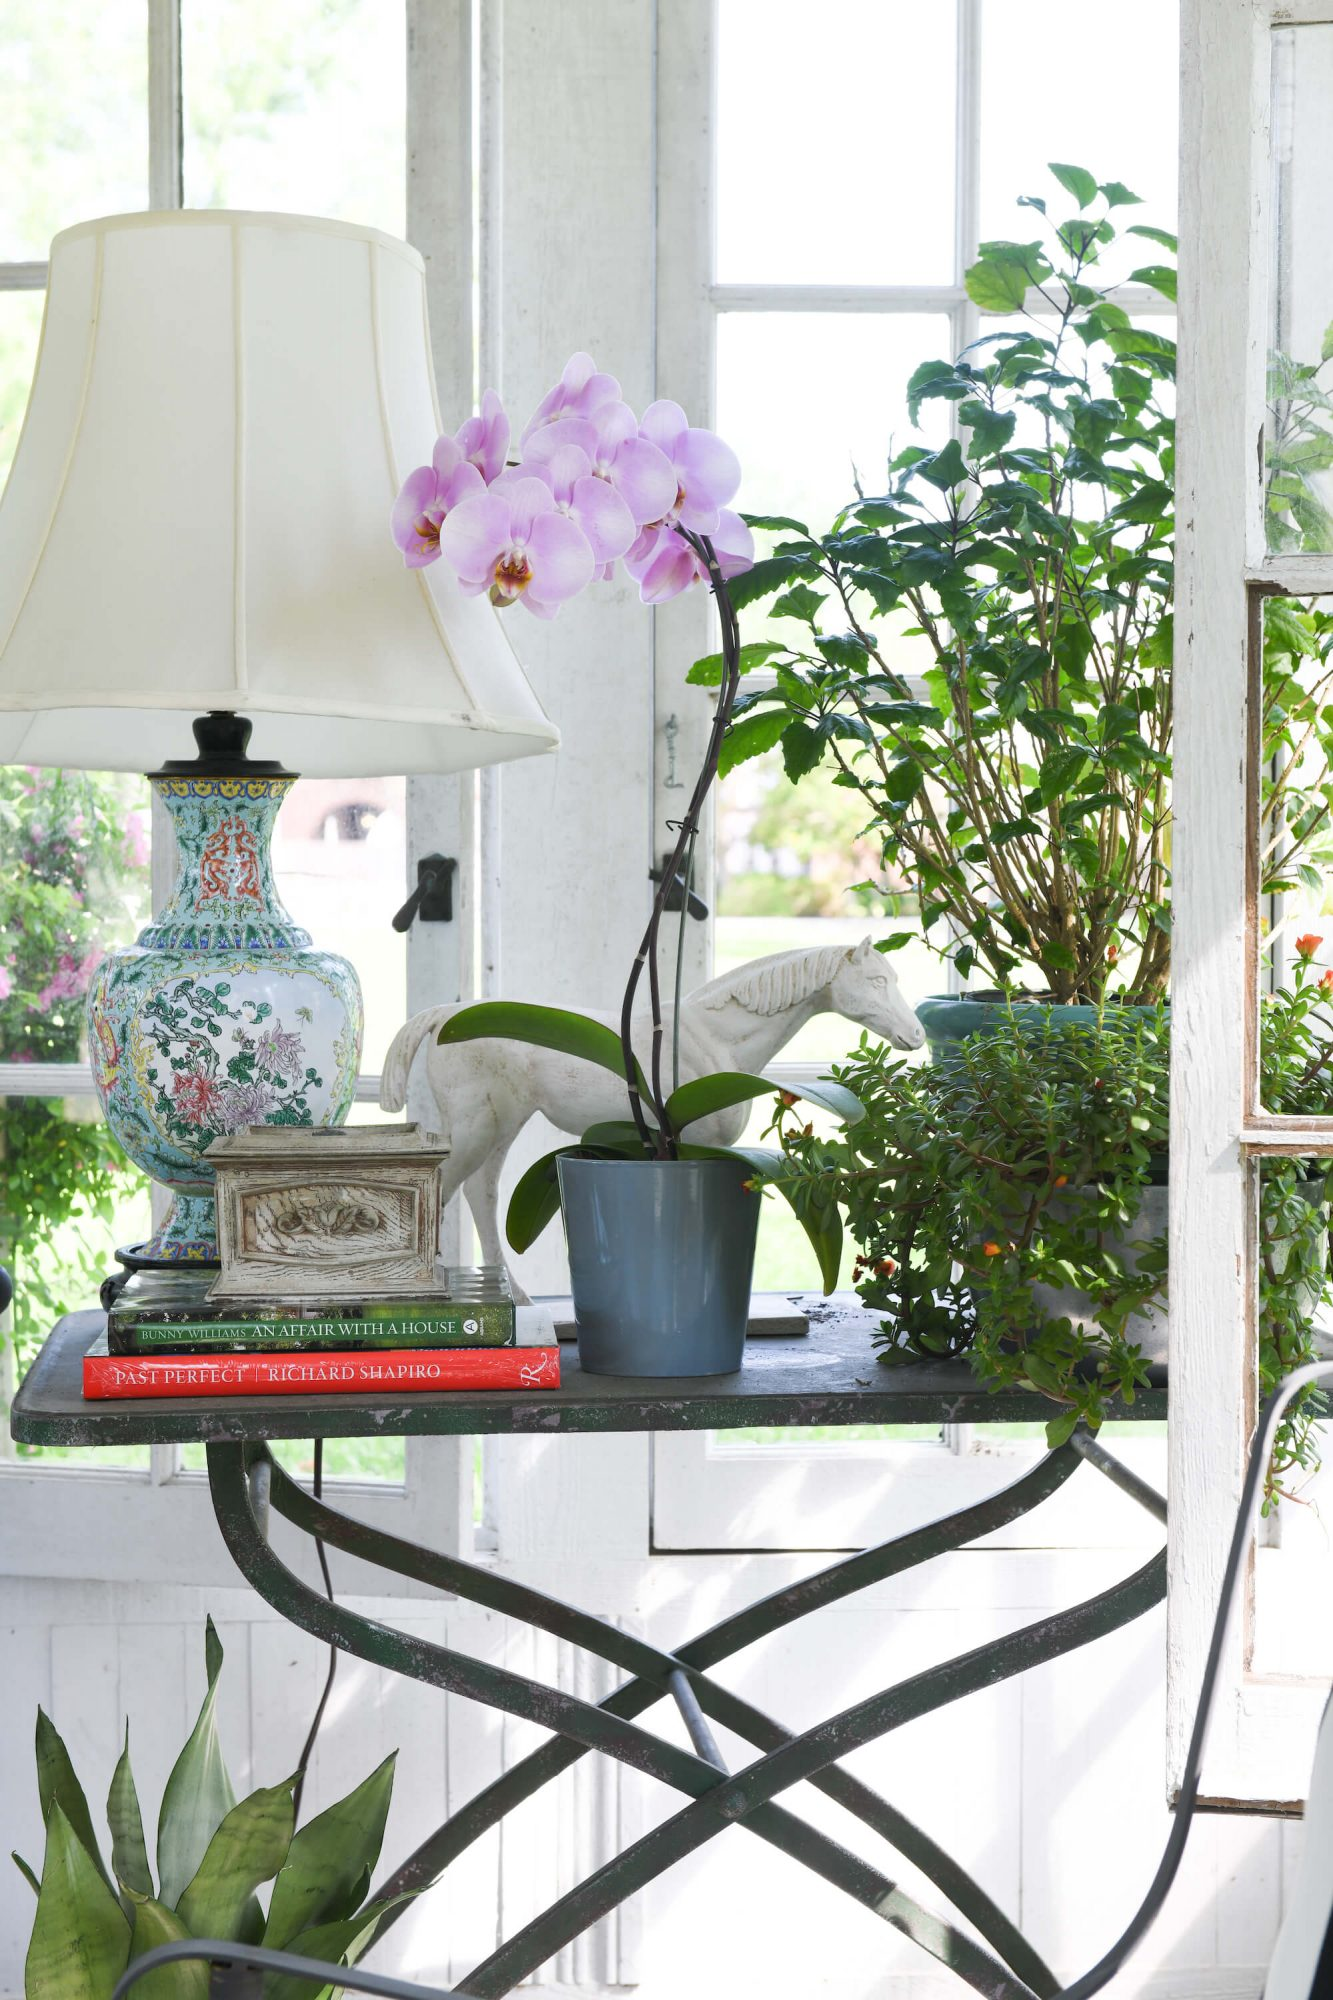 Thomas Guy Interiors garden shed and carriage house